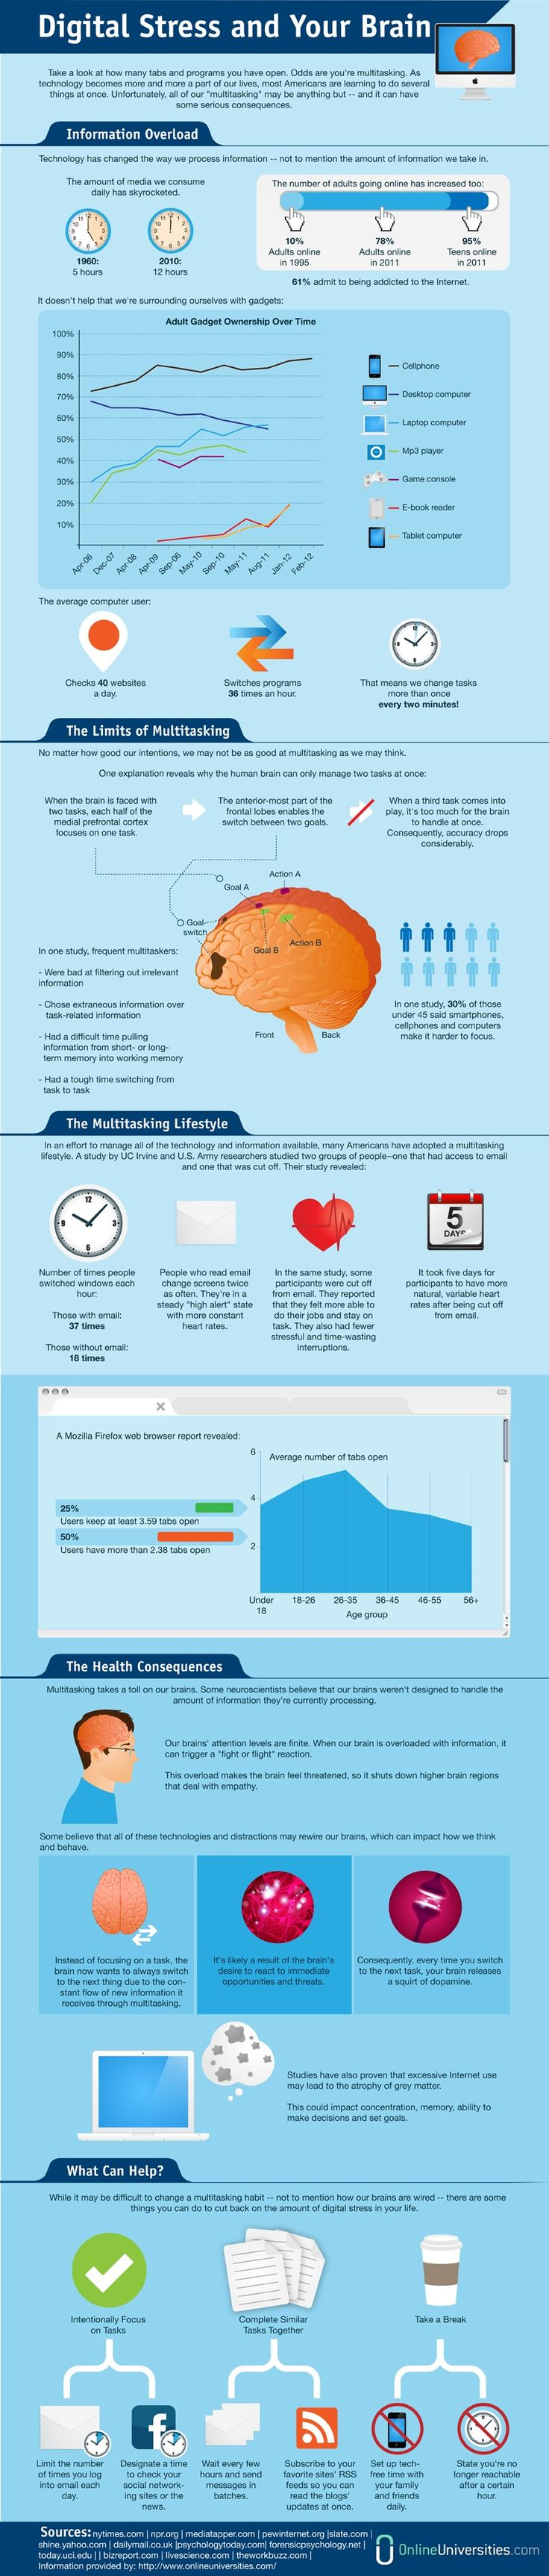 Digital #stress and your #brain. #multitasking #technology #internet #media #cellphone #mobile #tablet #computer #ebook #memory #email #mozilla #health #neuroscience #dopamine #infographic